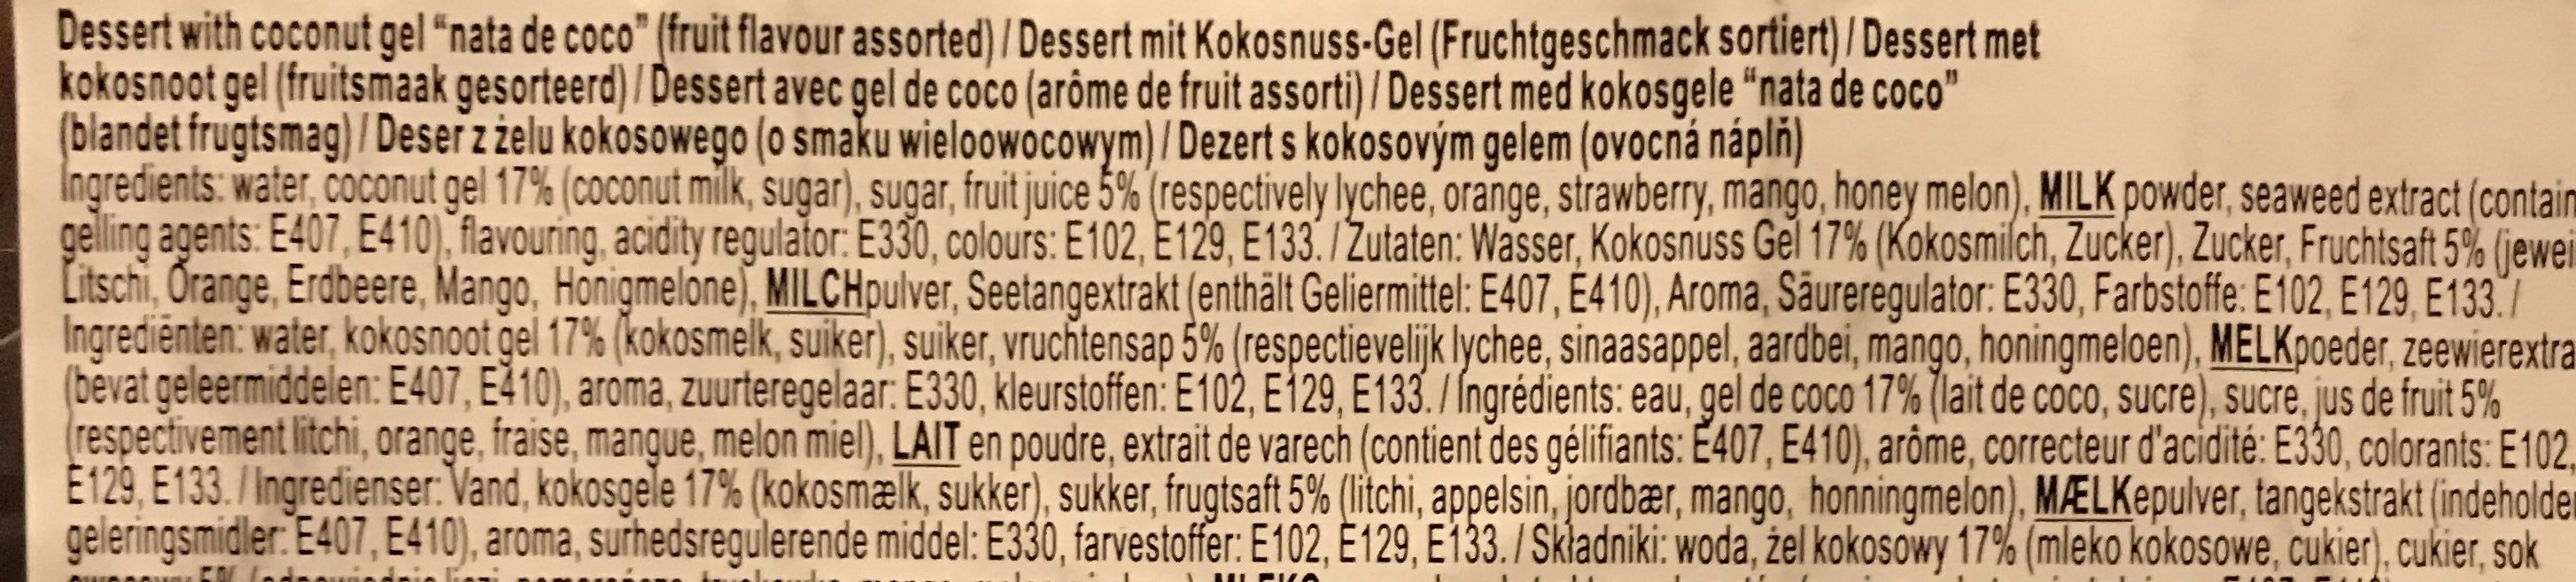 Assorted Fruit Flavour Jelly Pudding with ut Gel Pieces 6 x - Ingrédients